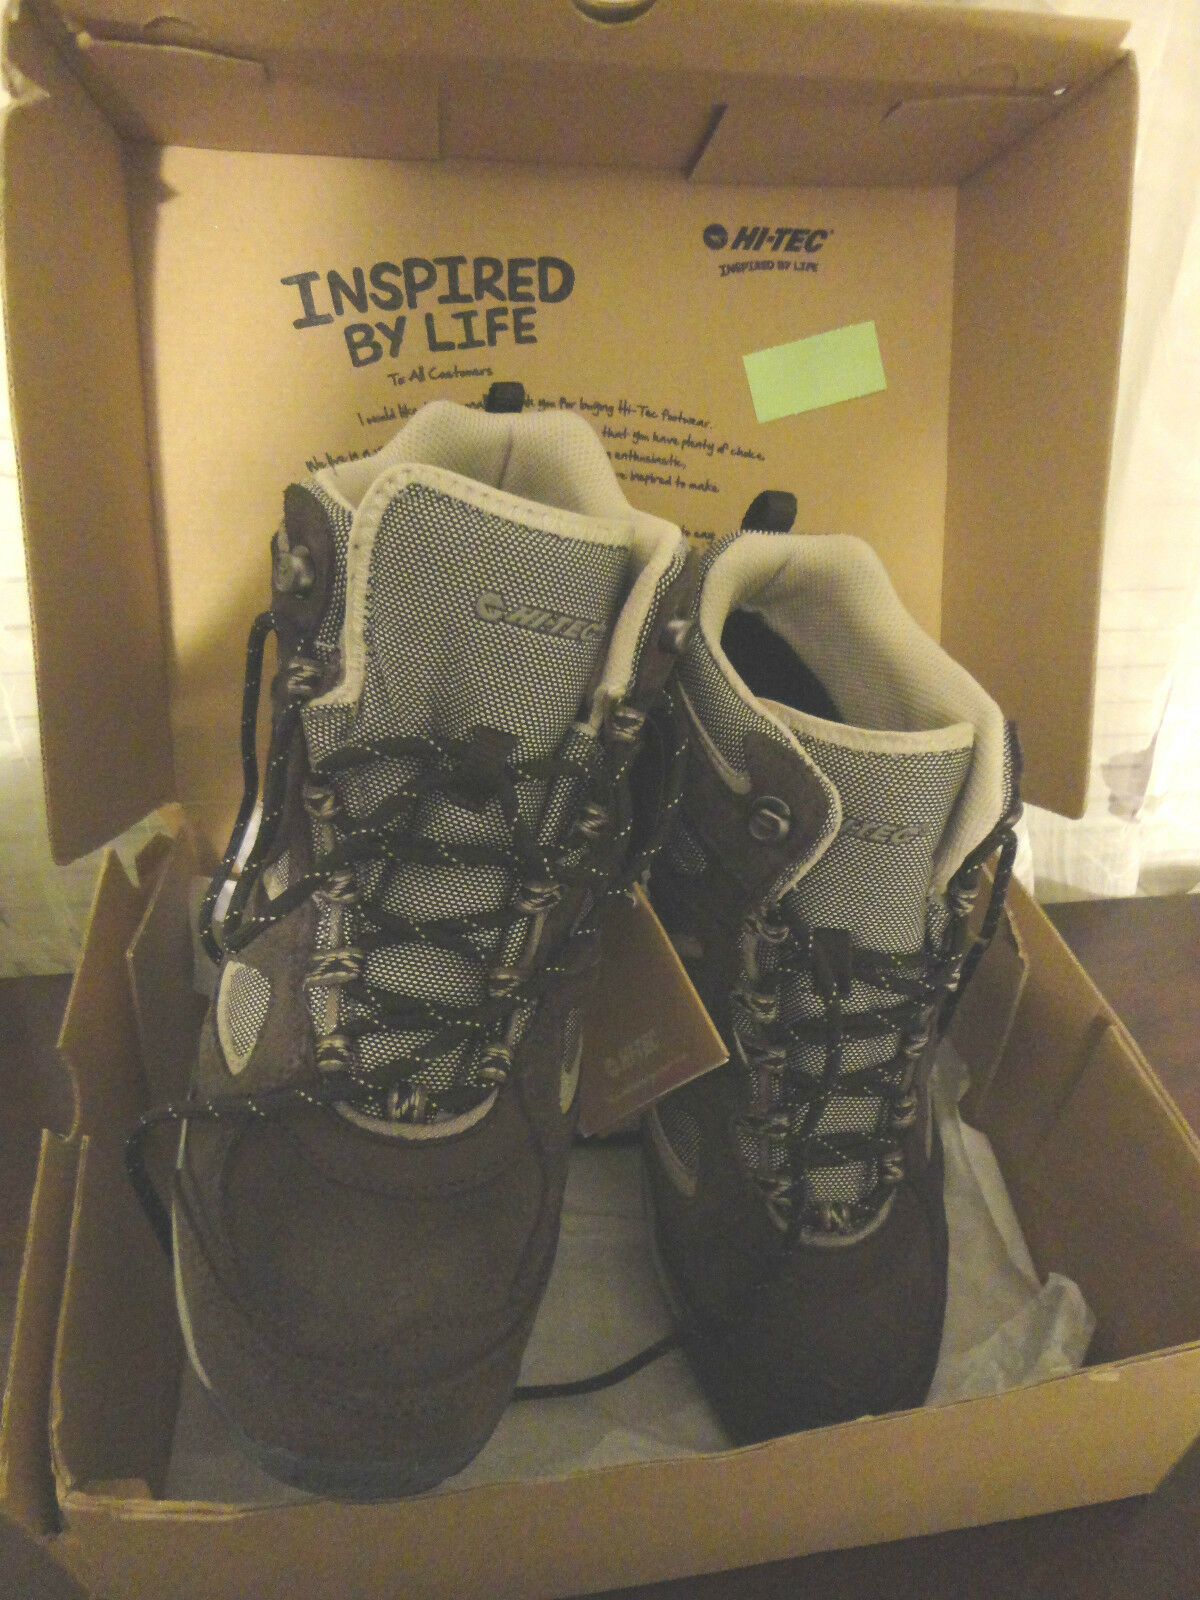 HI-TEC INSPIRED BY LIFE WOMENS WATER PROOF HIKING BOOTS SHOES SIZE 9.5